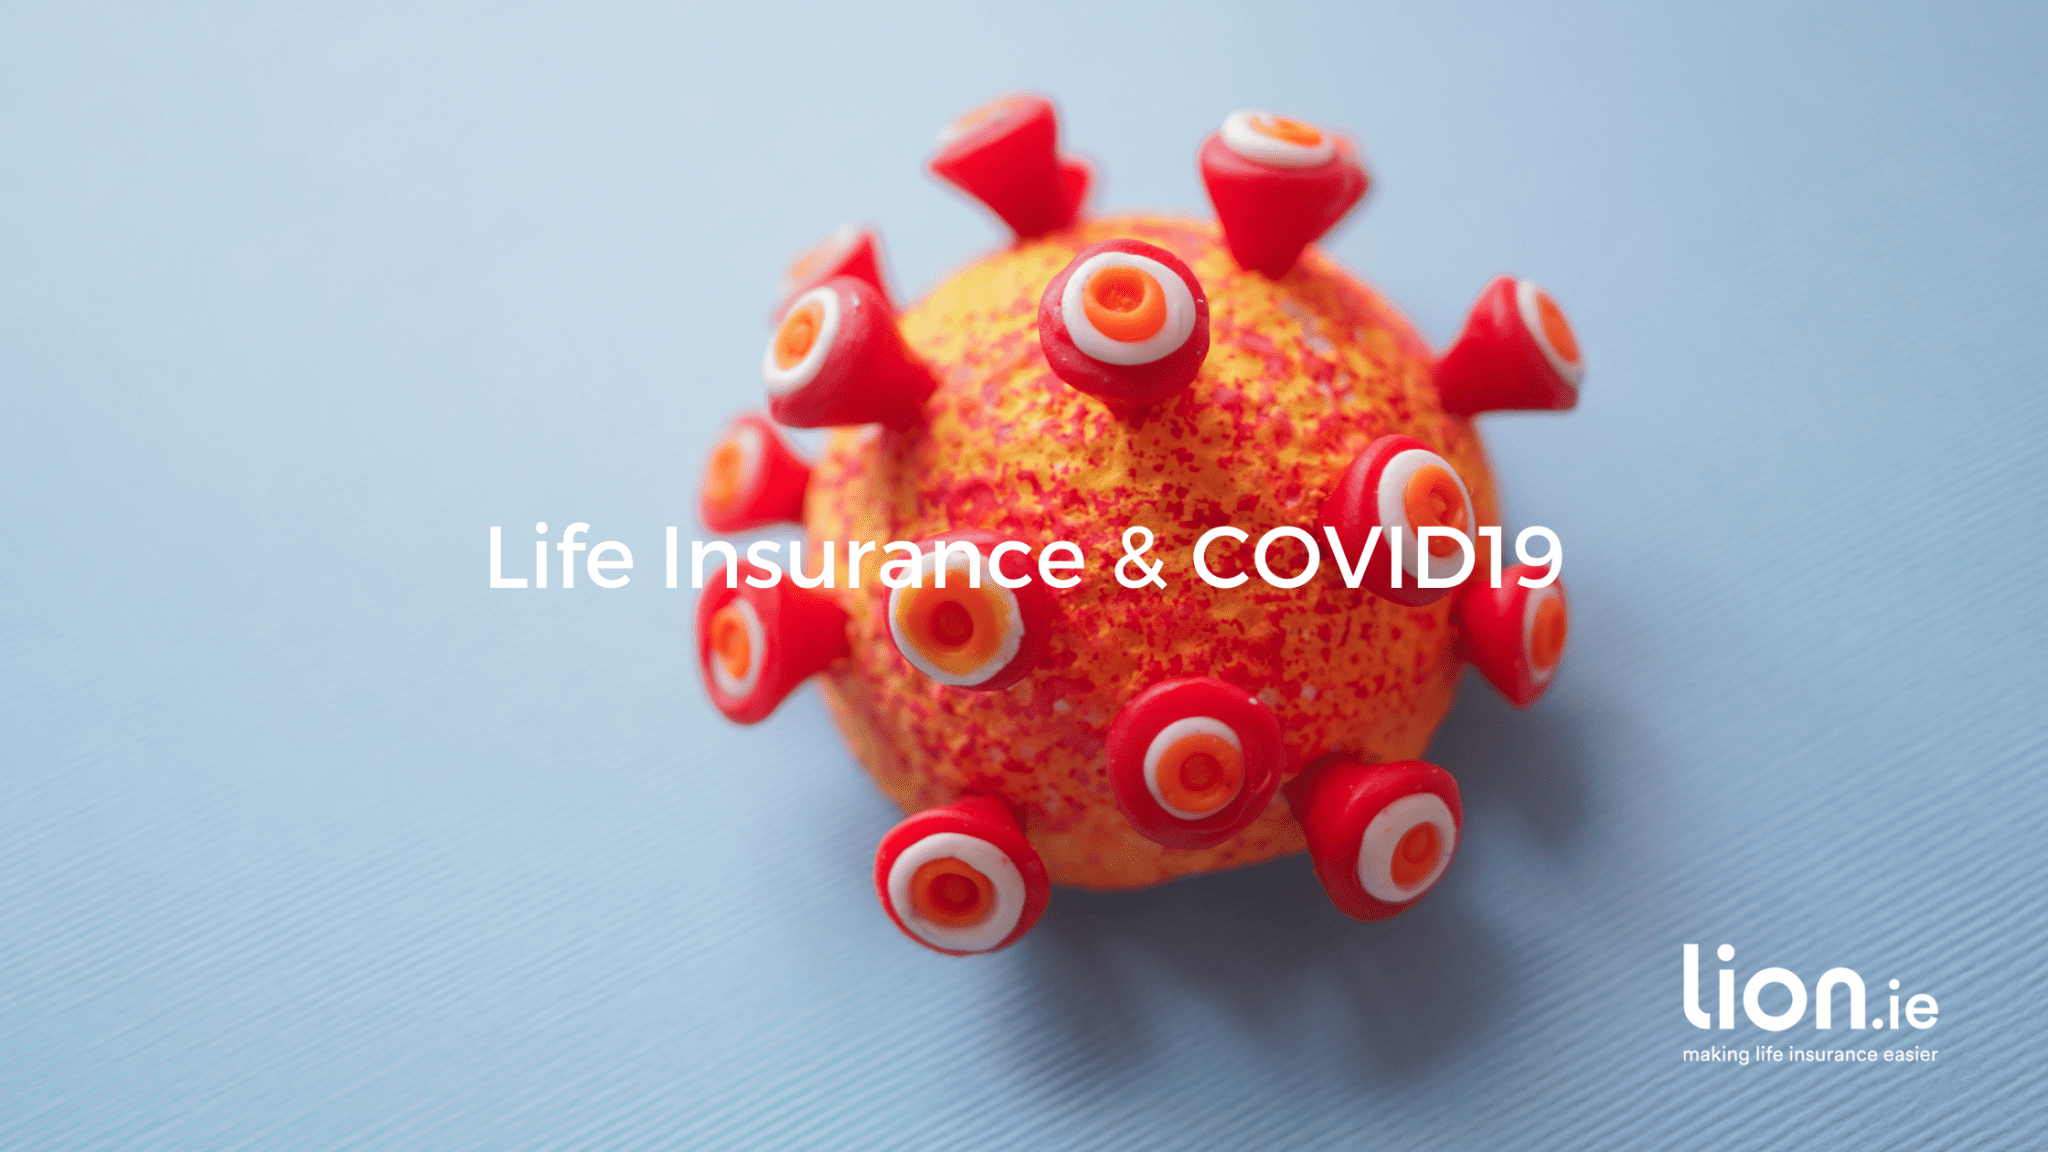 life insurance and COVID19